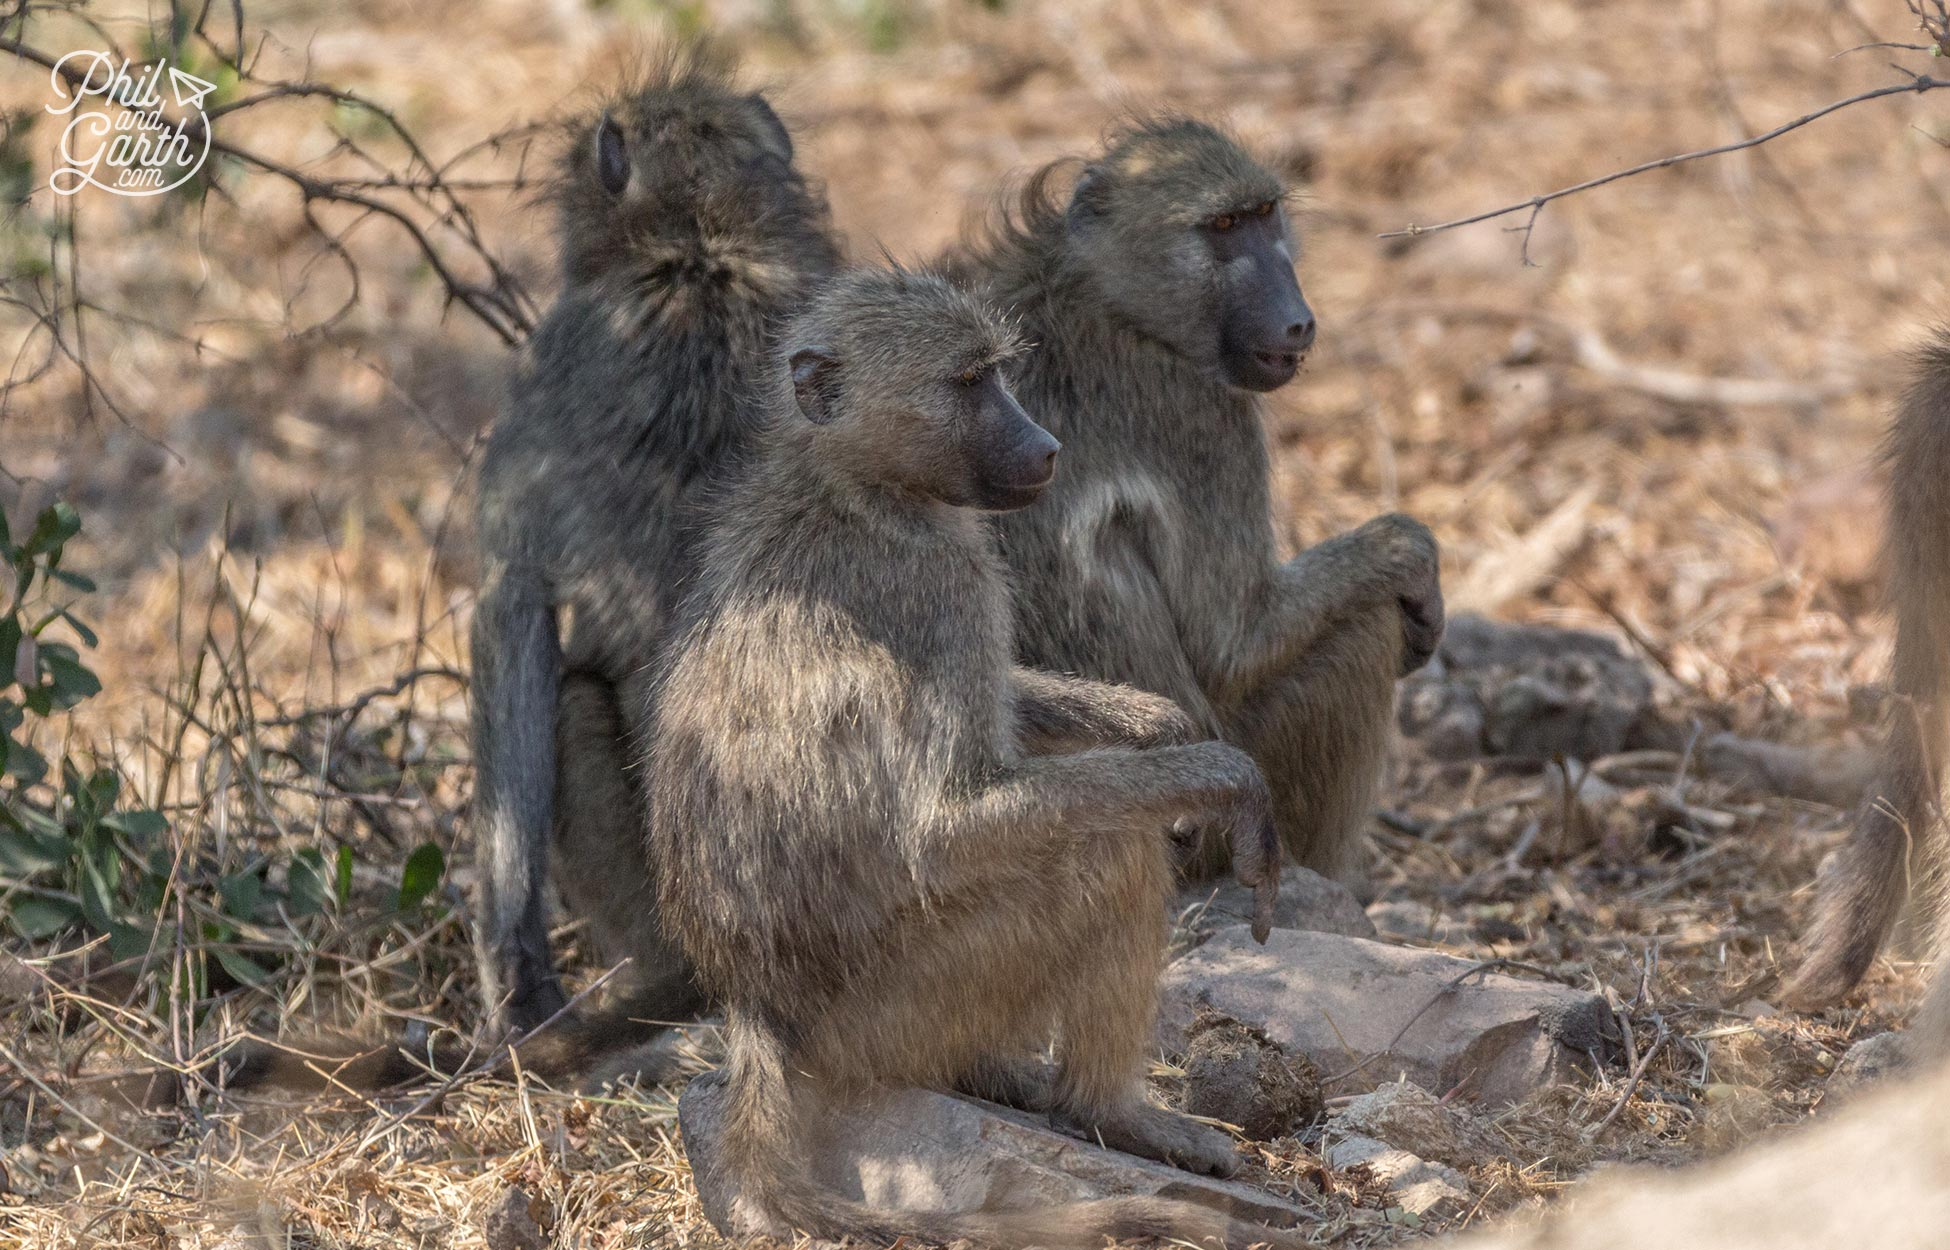 2 day Kruger National Park Safari - Baboons in Kruger National Park